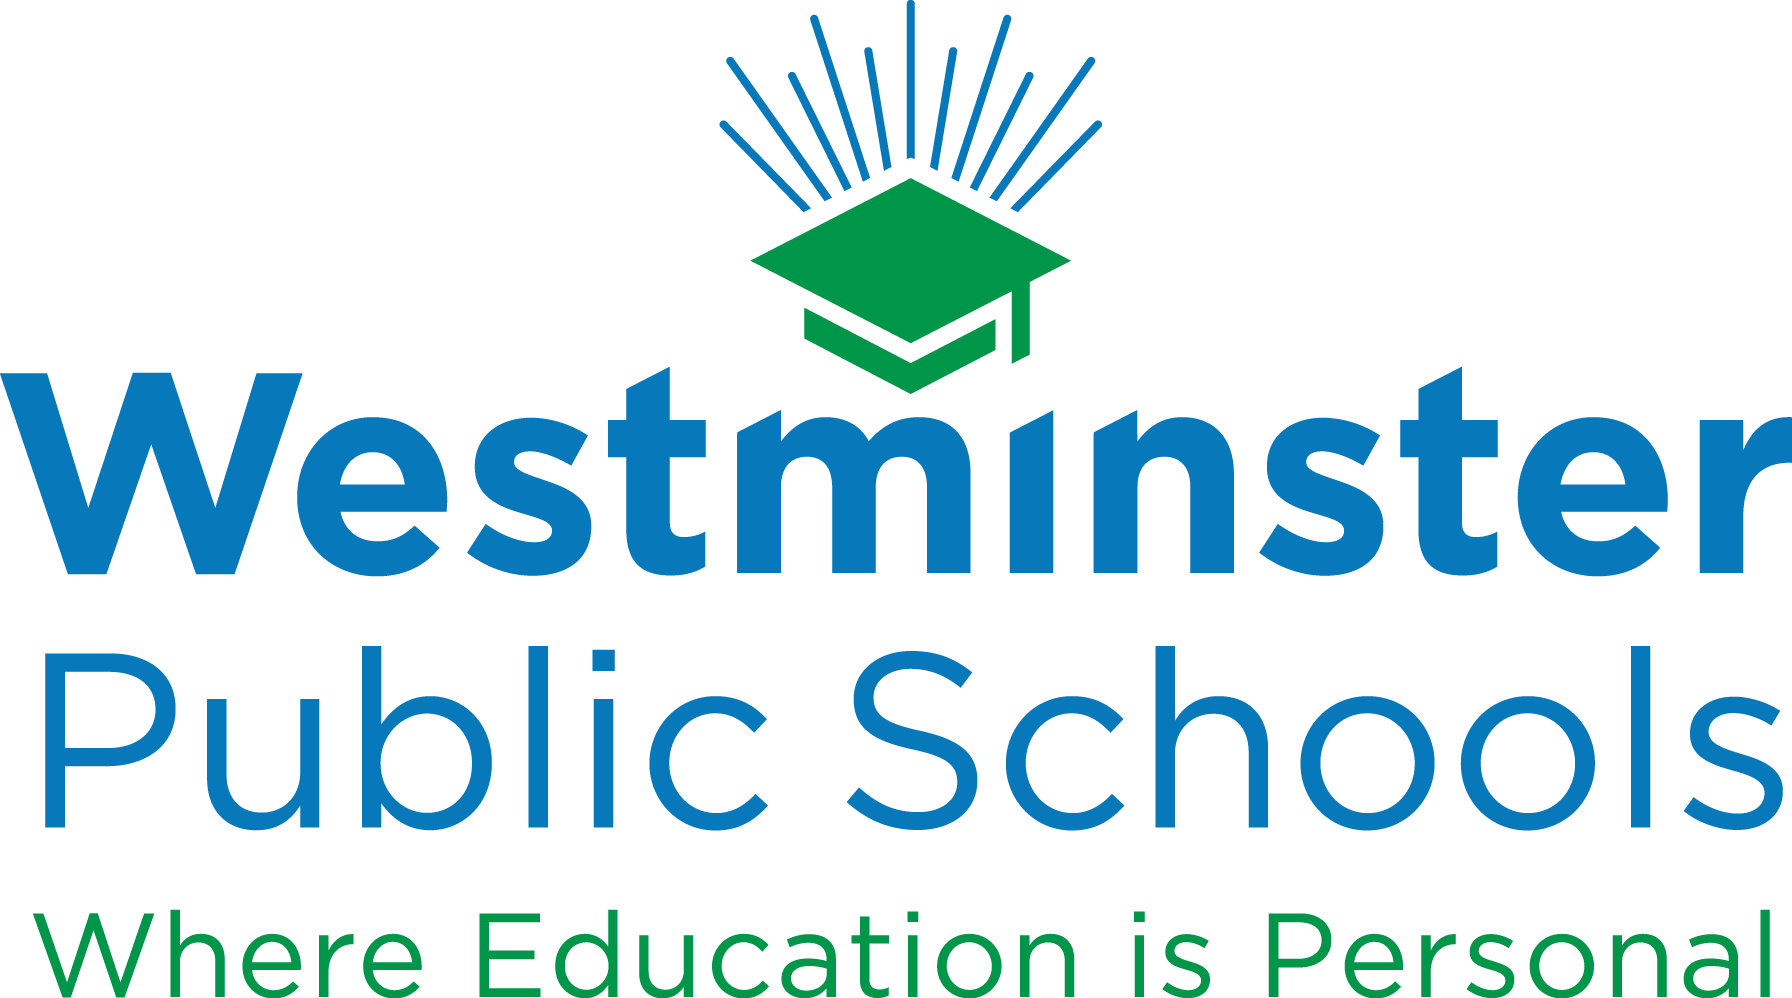 westminster public schools logo, text: where education is personal